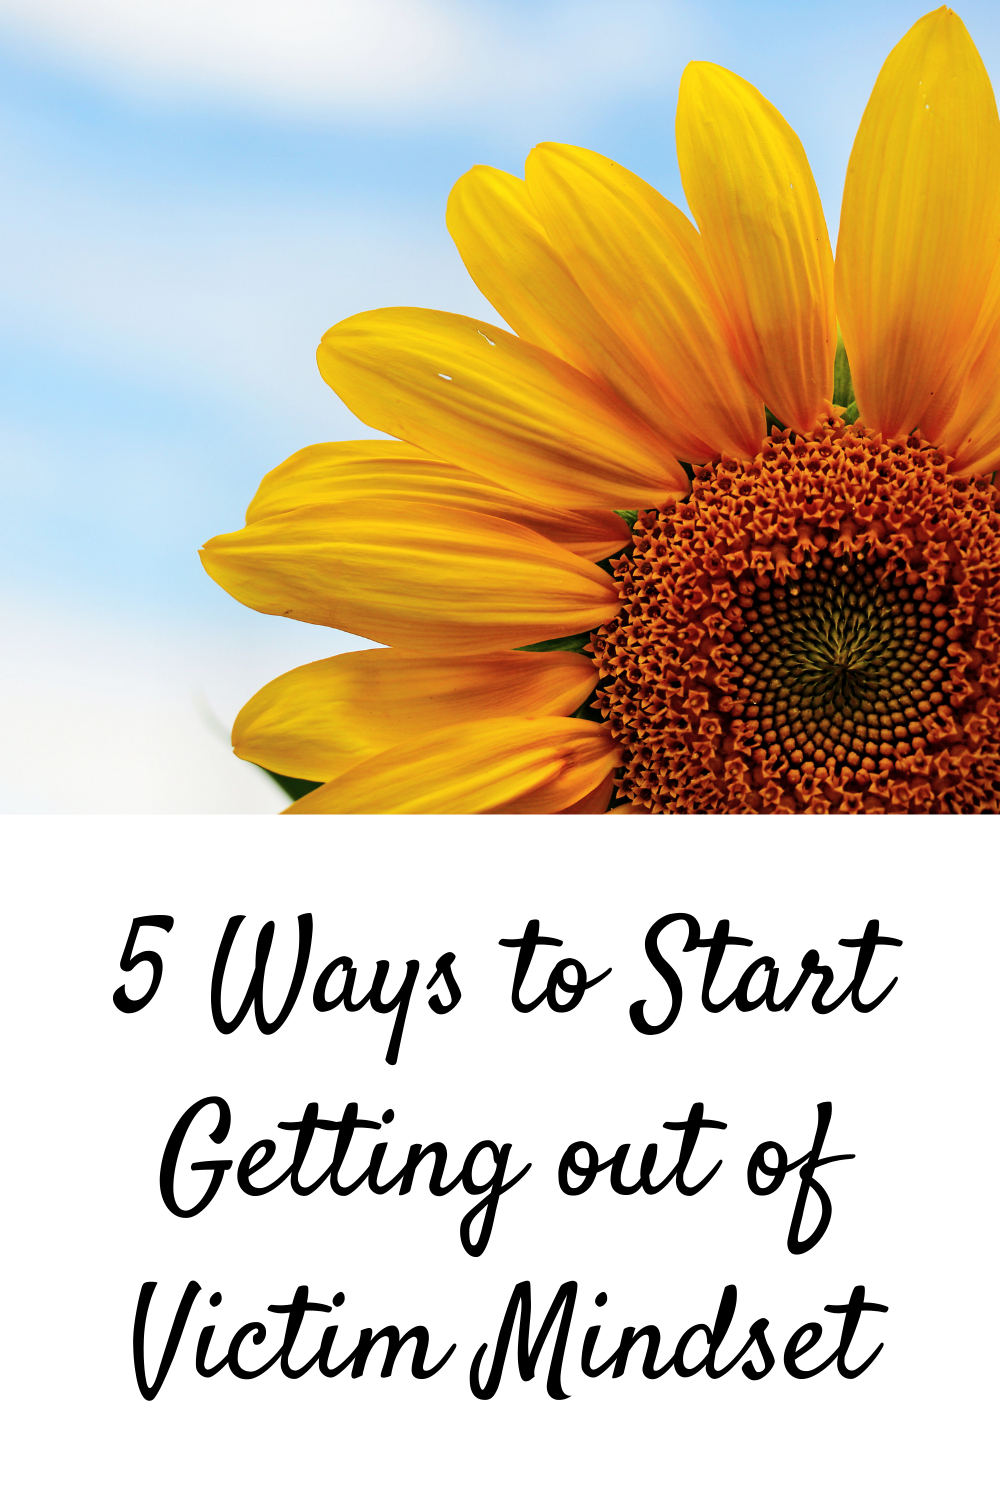 5 Ways to Start Getting out of Victim Mindset